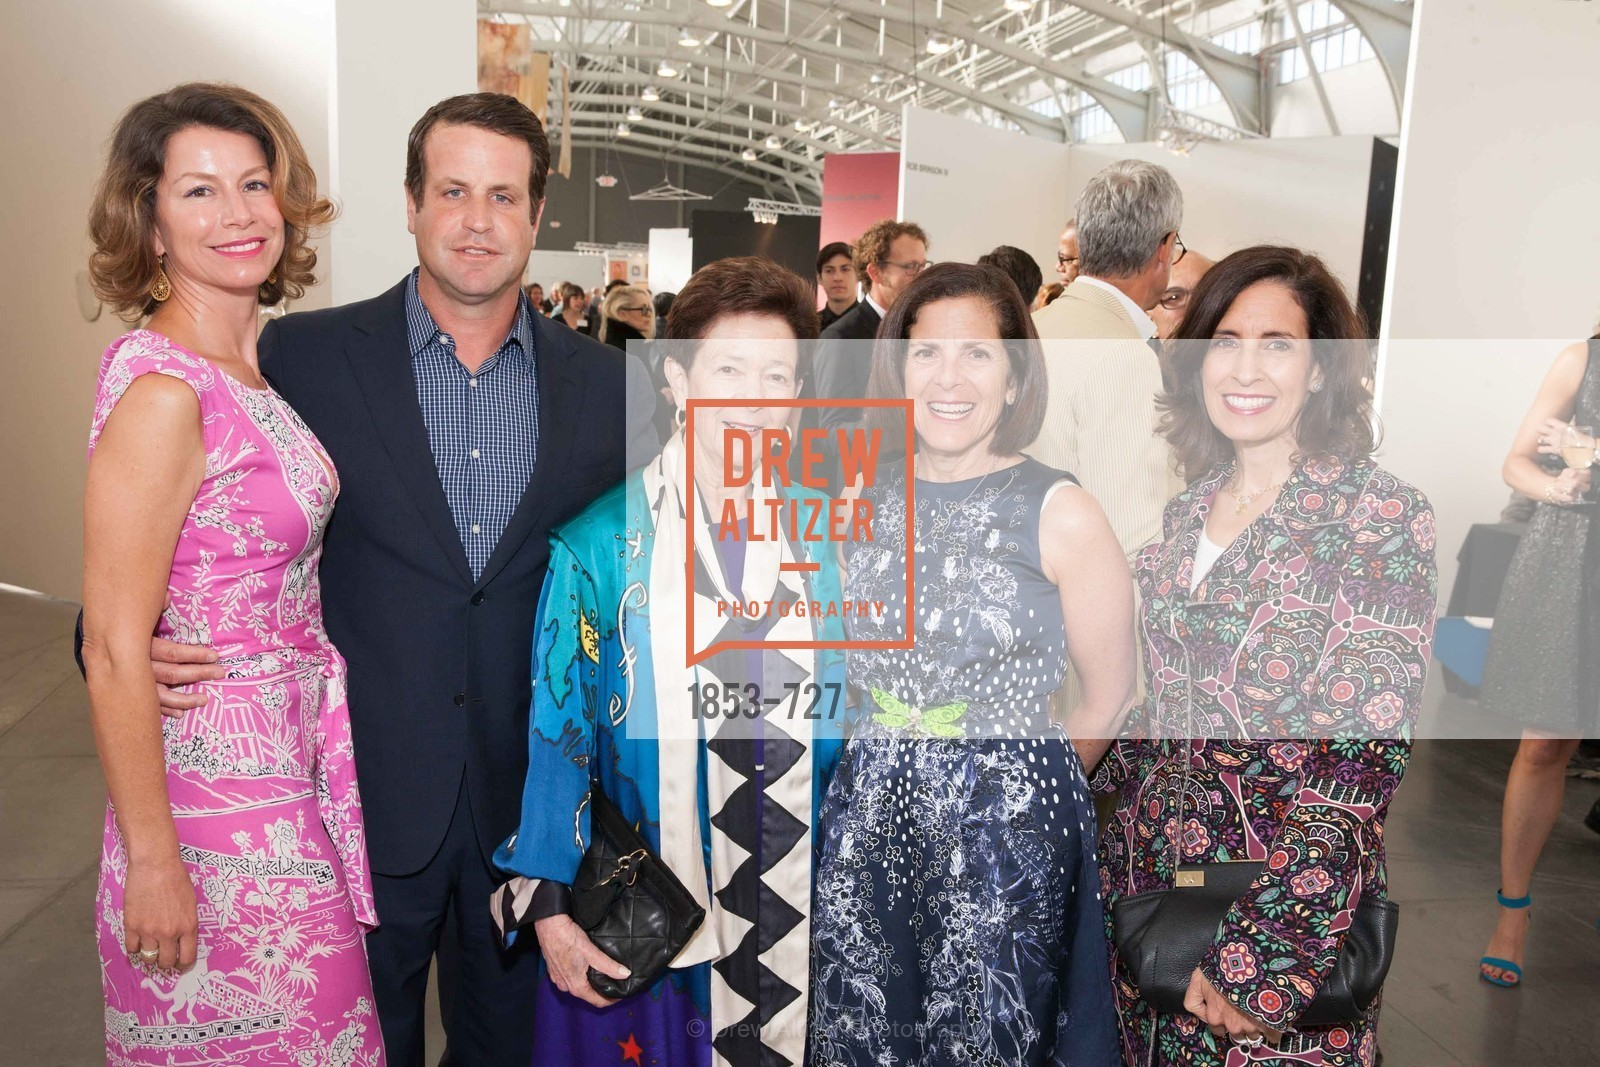 Simone LaCorte, Nick Heldfond, Cissie Swig, Marjorie Swig, Darian Swig, SAN FRANCISCO ART INSTITUTE Gala Honoring Art Visionary and Advocate ROSELYNE CHROMAN SWIG, US, May 14th, 2015,Drew Altizer, Drew Altizer Photography, full-service agency, private events, San Francisco photographer, photographer california